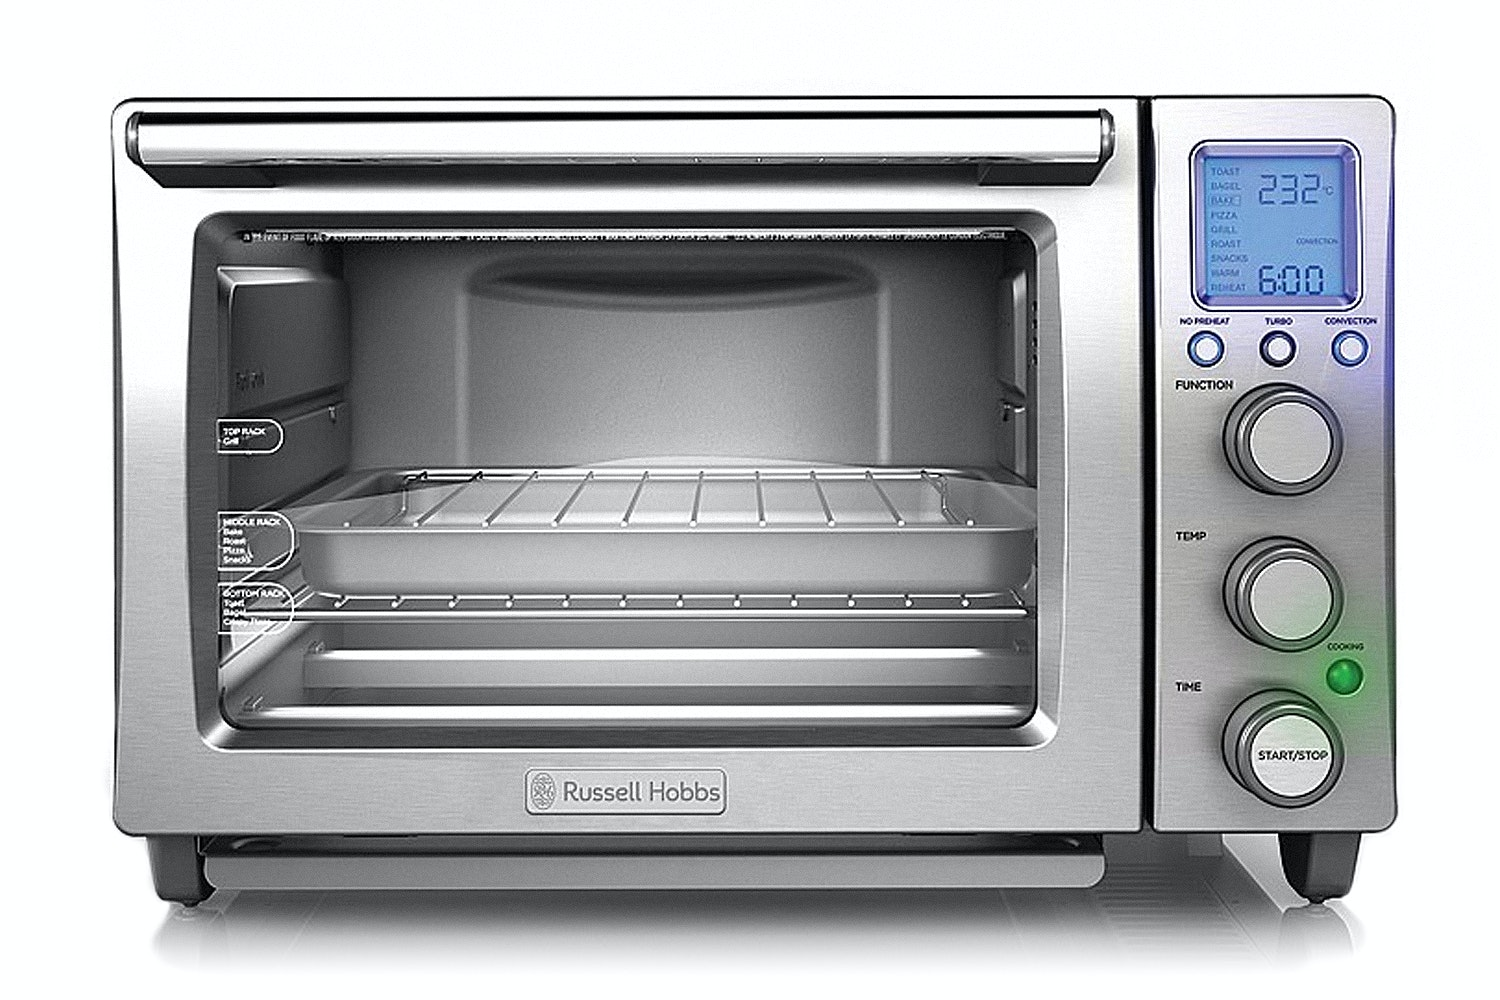 Online Shop Home Decor Russell Hobbs Performance Digital Convection Oven Harvey